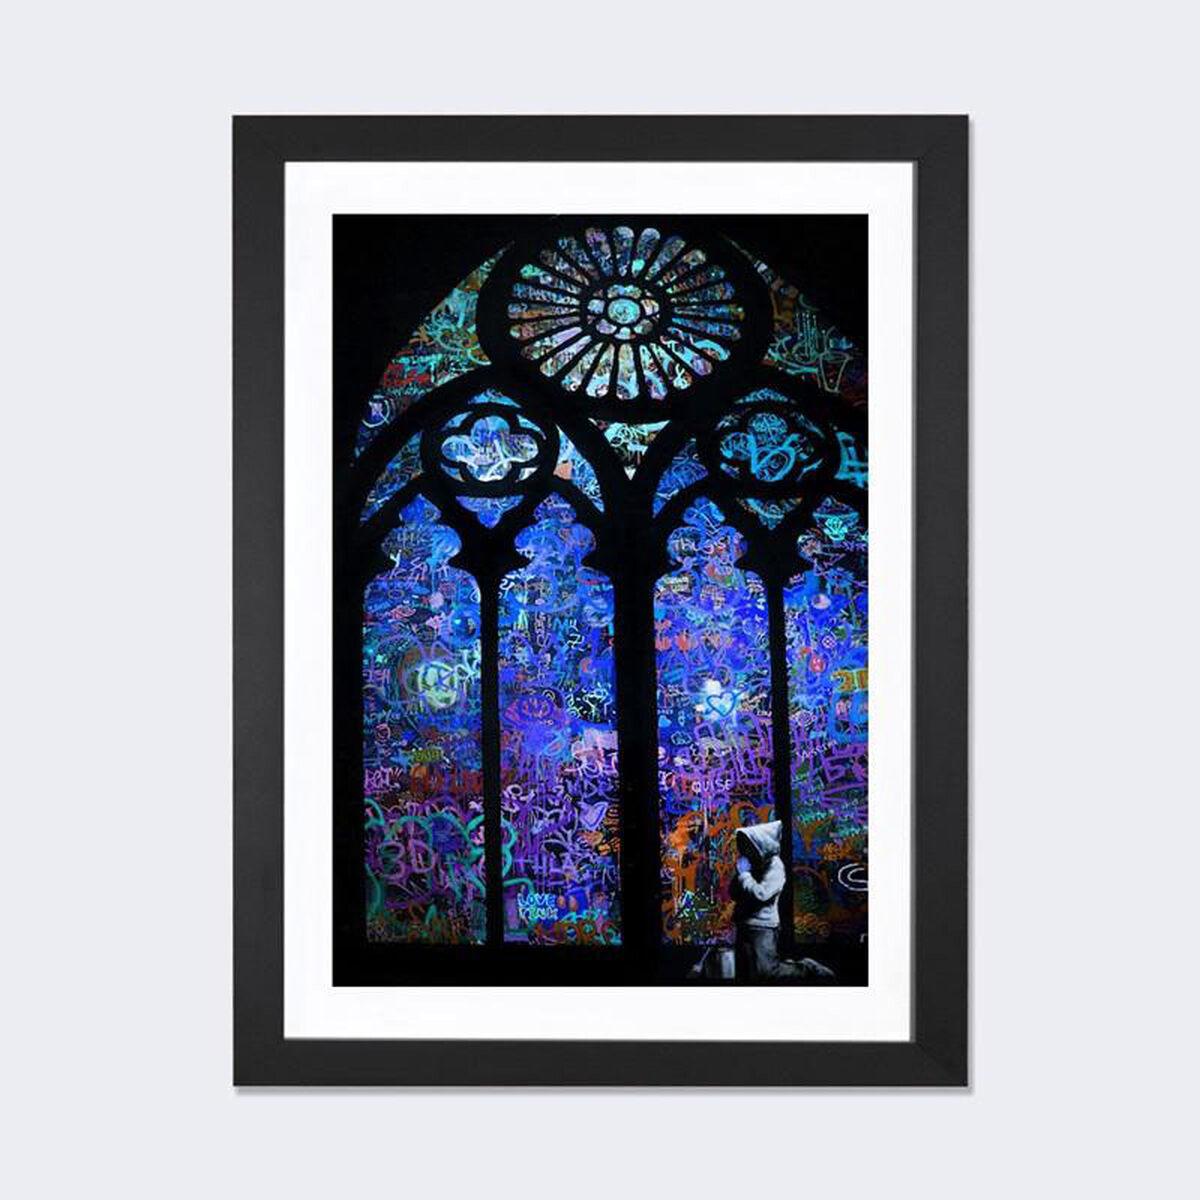 Icanvas stained glass window ii by banksy artwork on fine for 16 x 24 window